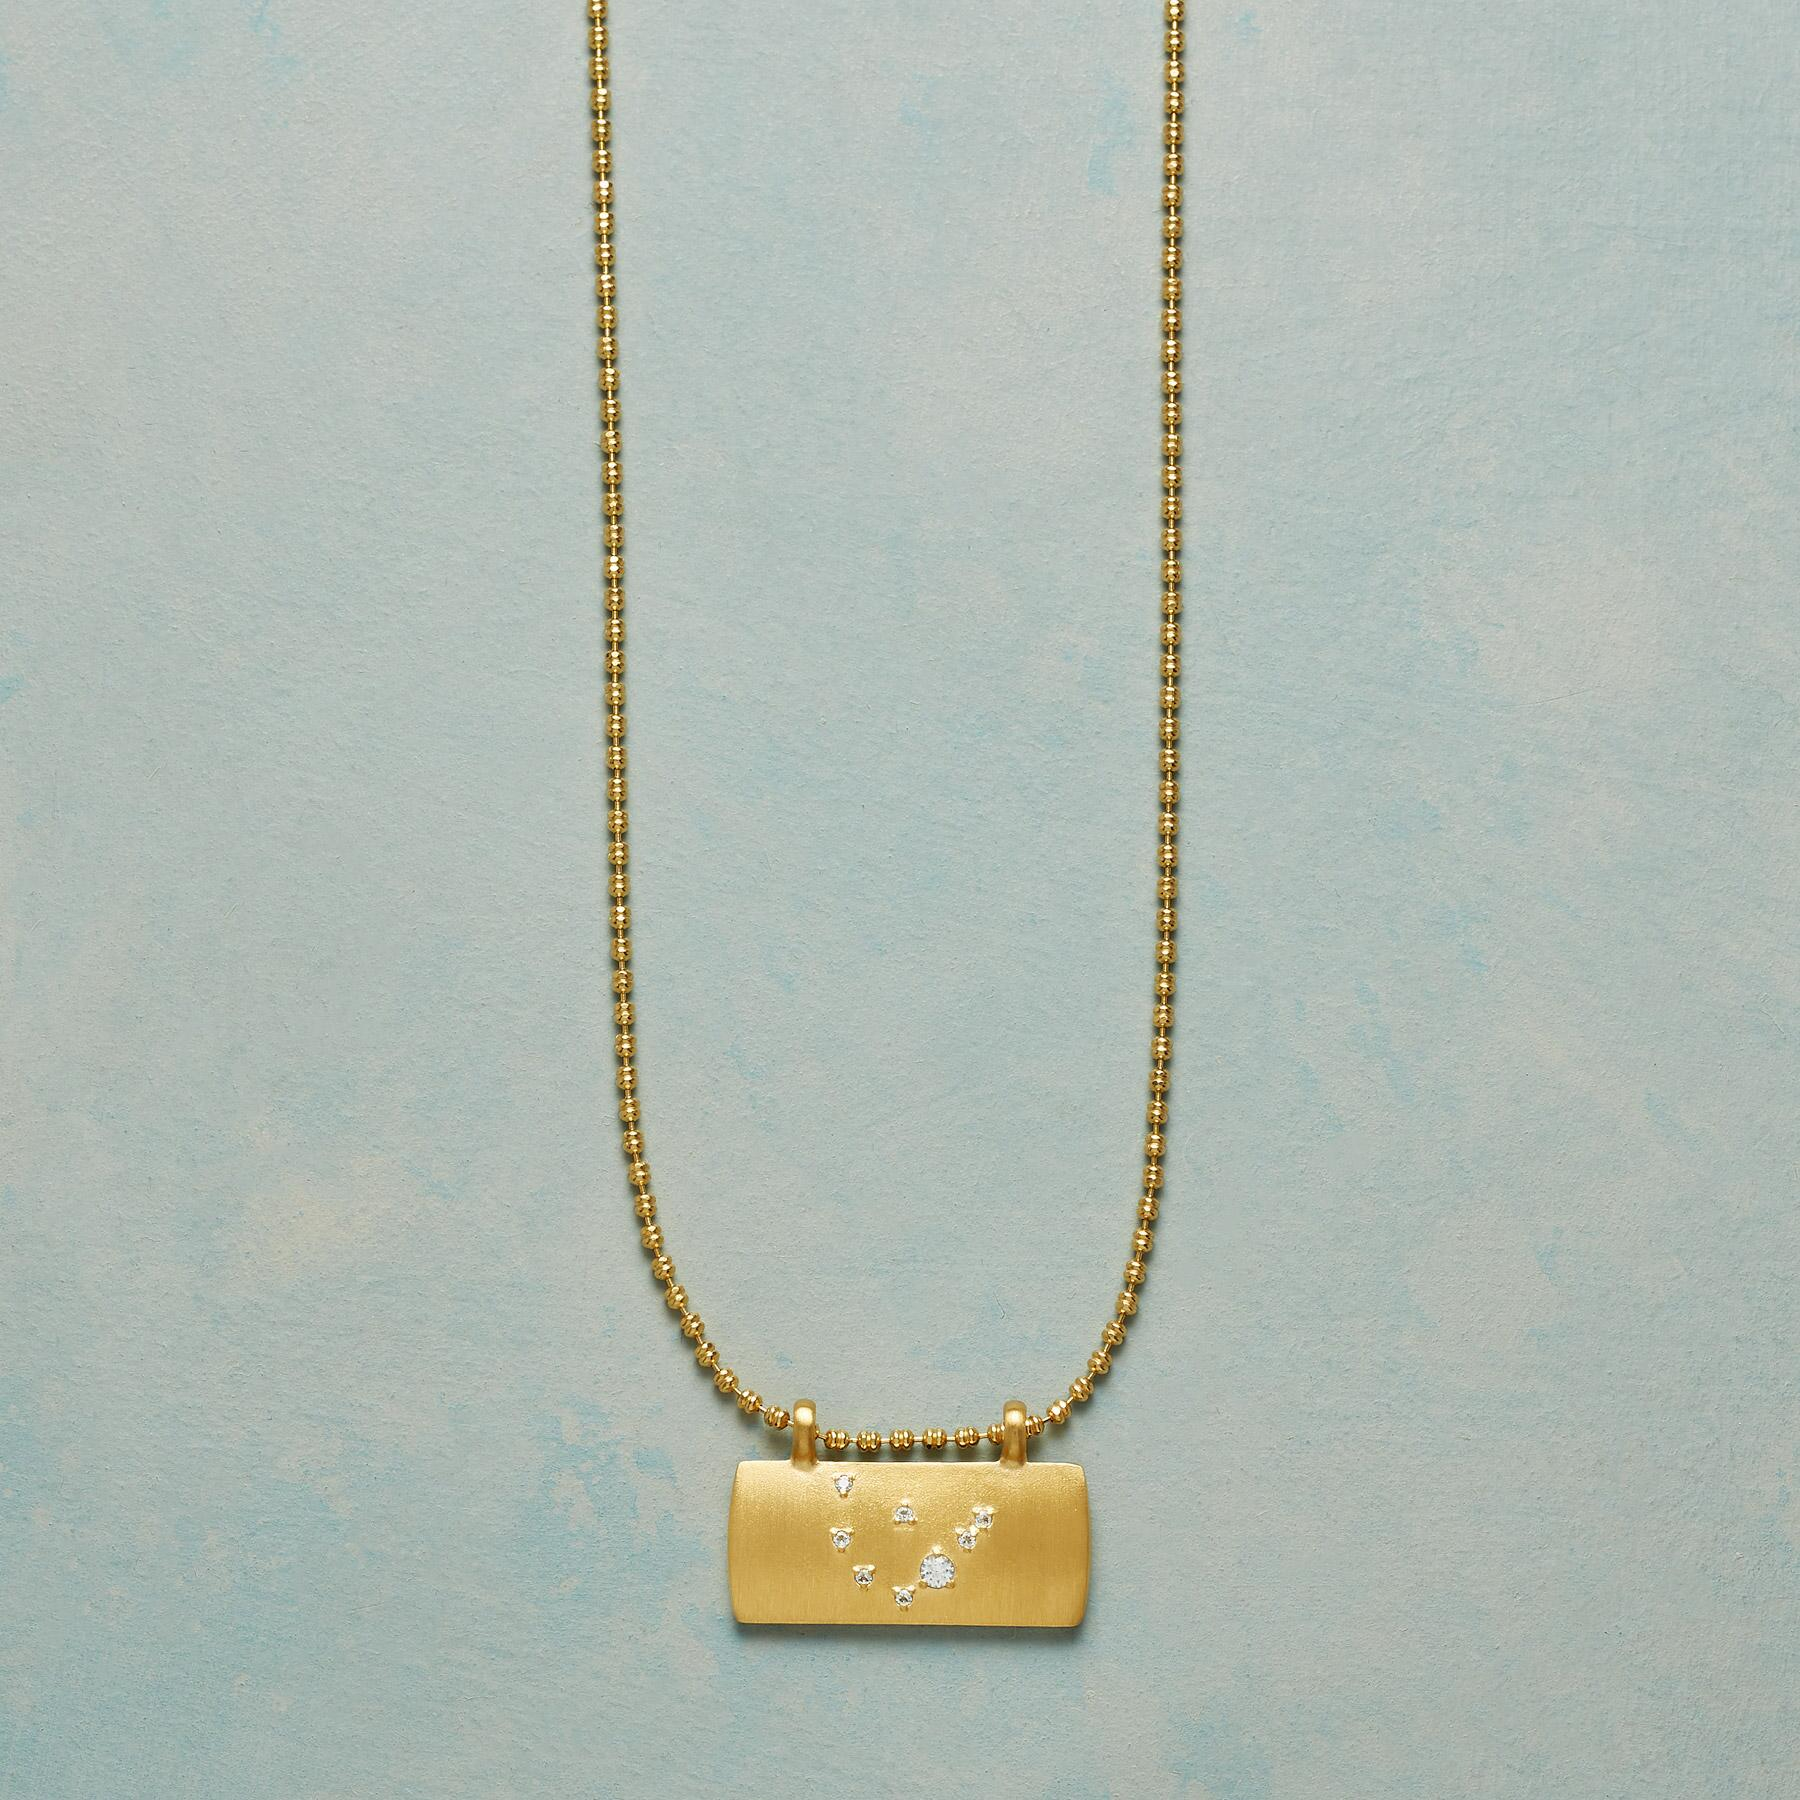 GOLD PLATE ASTROLOGICAL PENDANT NECKLACE: View 1